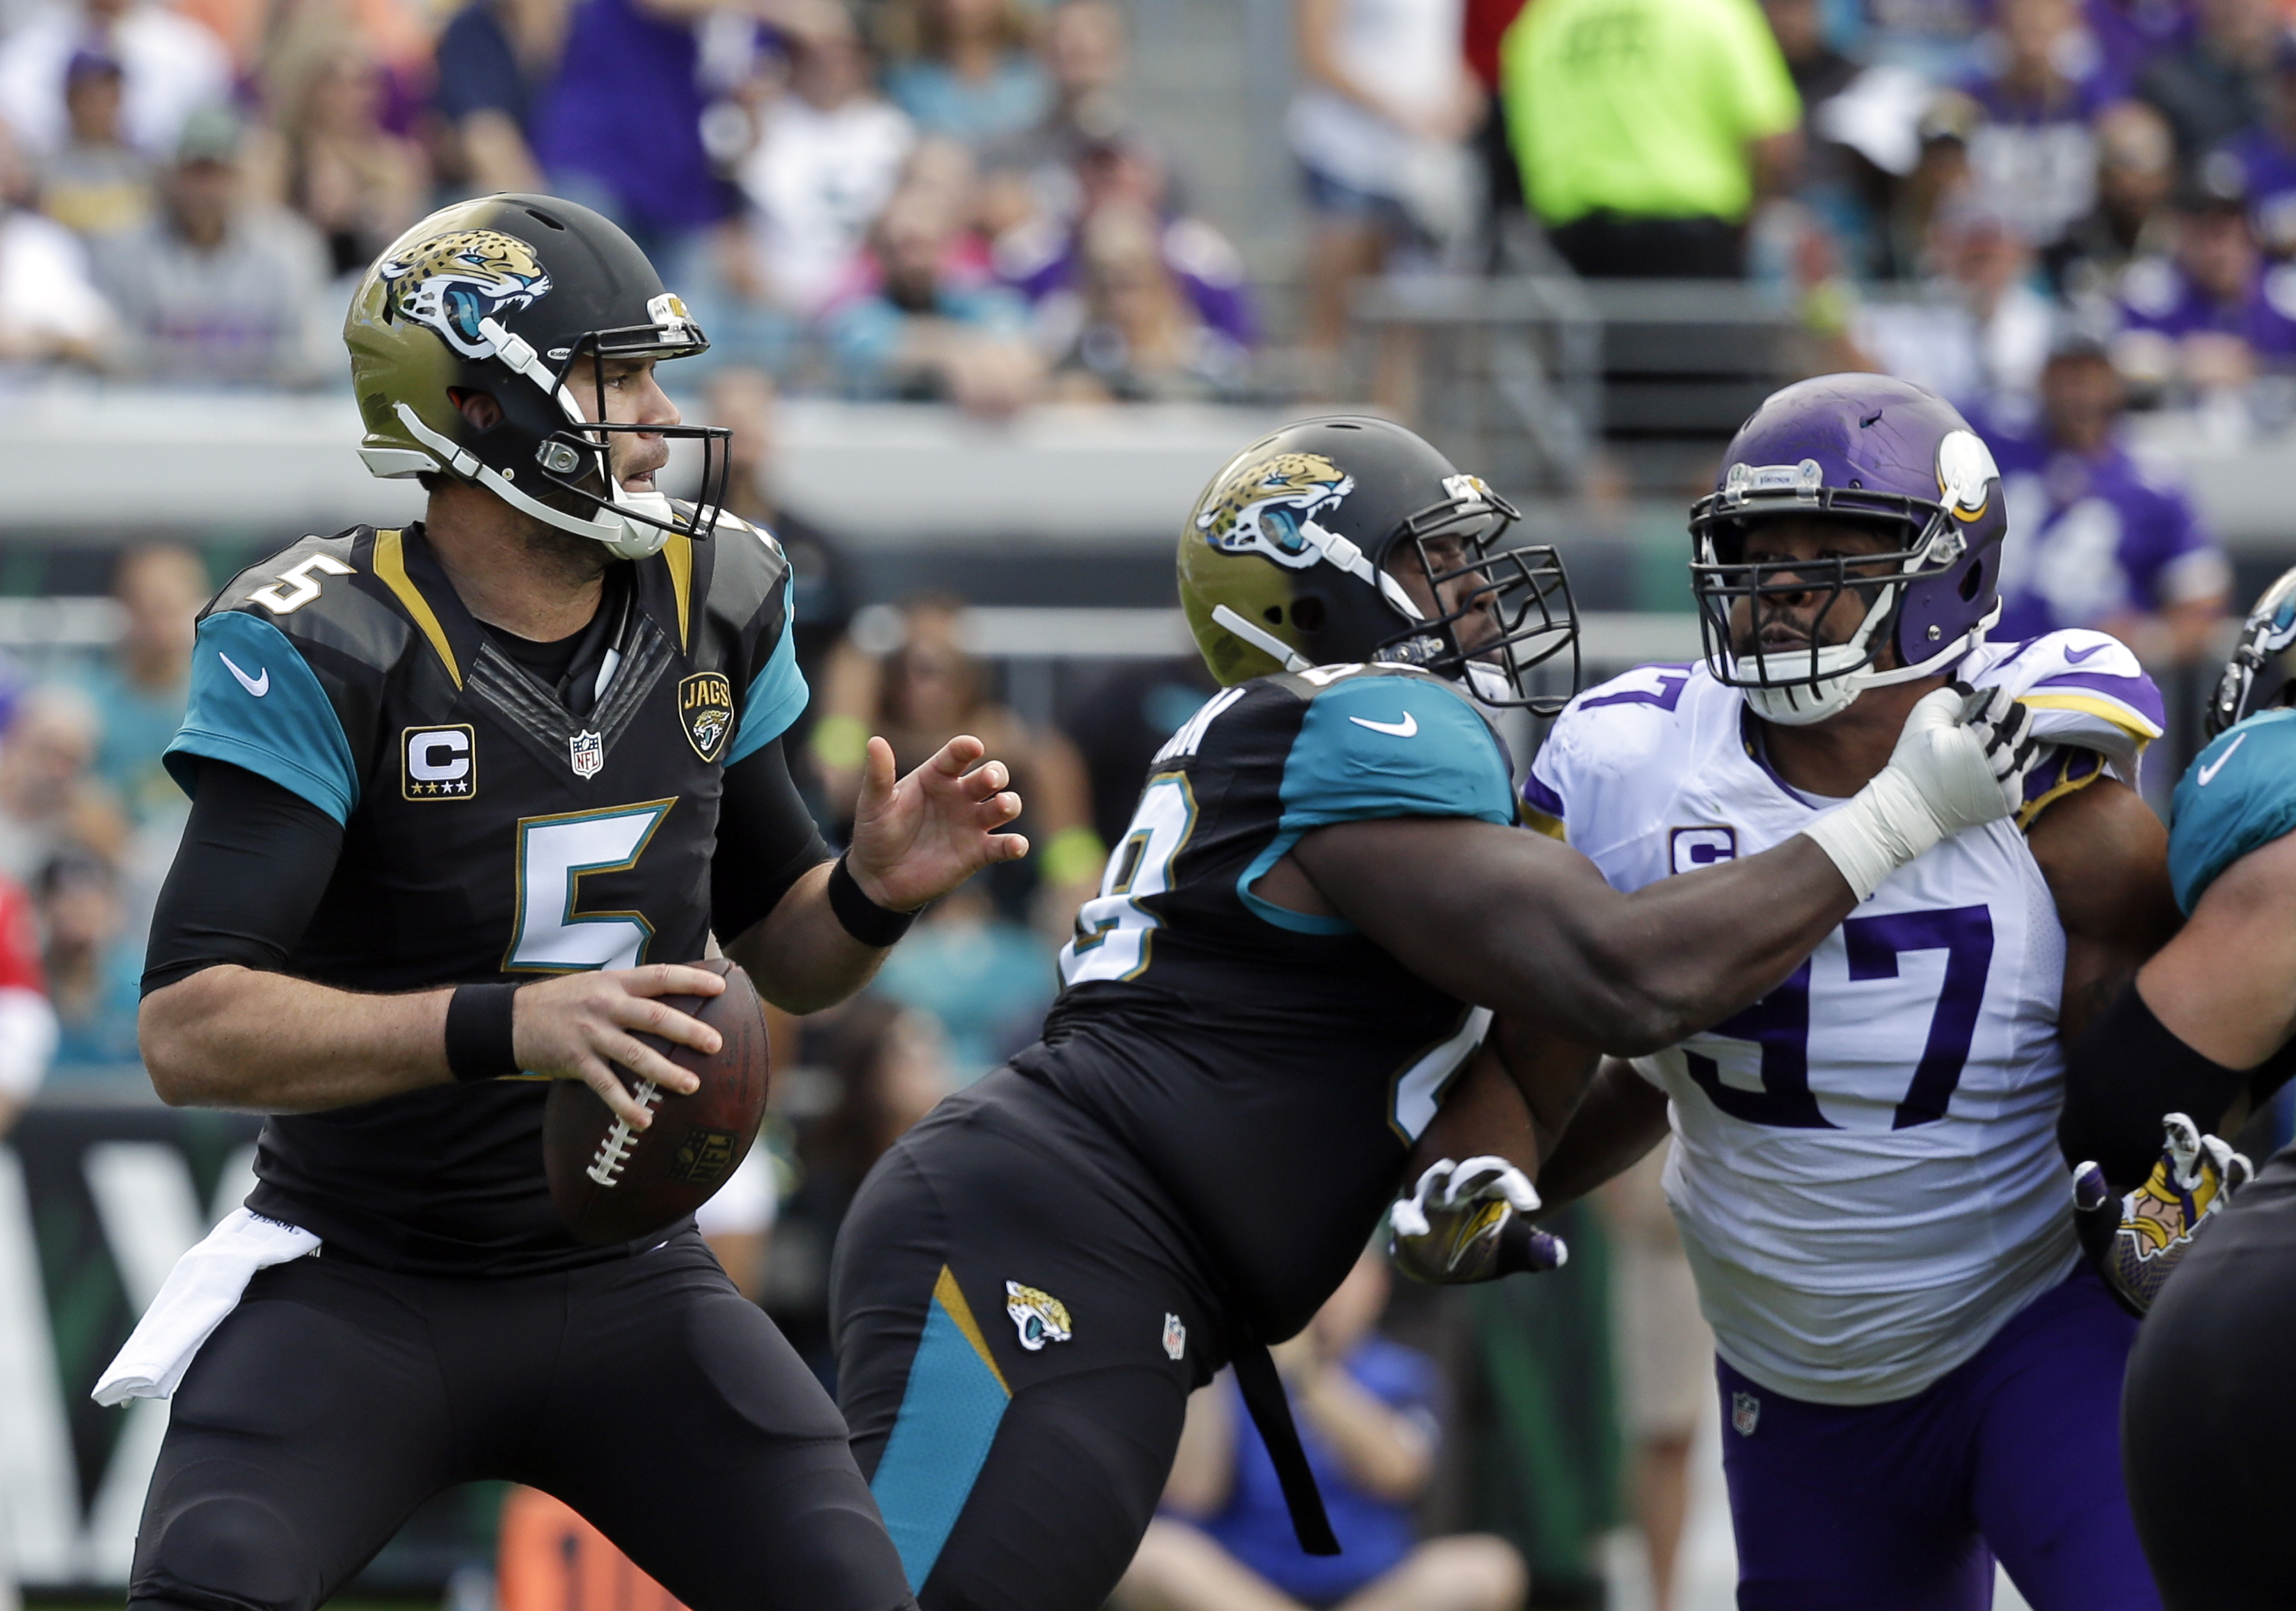 Jacksonville Jaguars quarterback Blake Bortles (5) looks for a receiver as tackle Kelvin Beachum, center, blocks Minnesota Vikings defensive end Everson Griffen (97) during the first half of an NFL football game, Sunday, Dec. 11, 2016, in Jacksonville, Fl